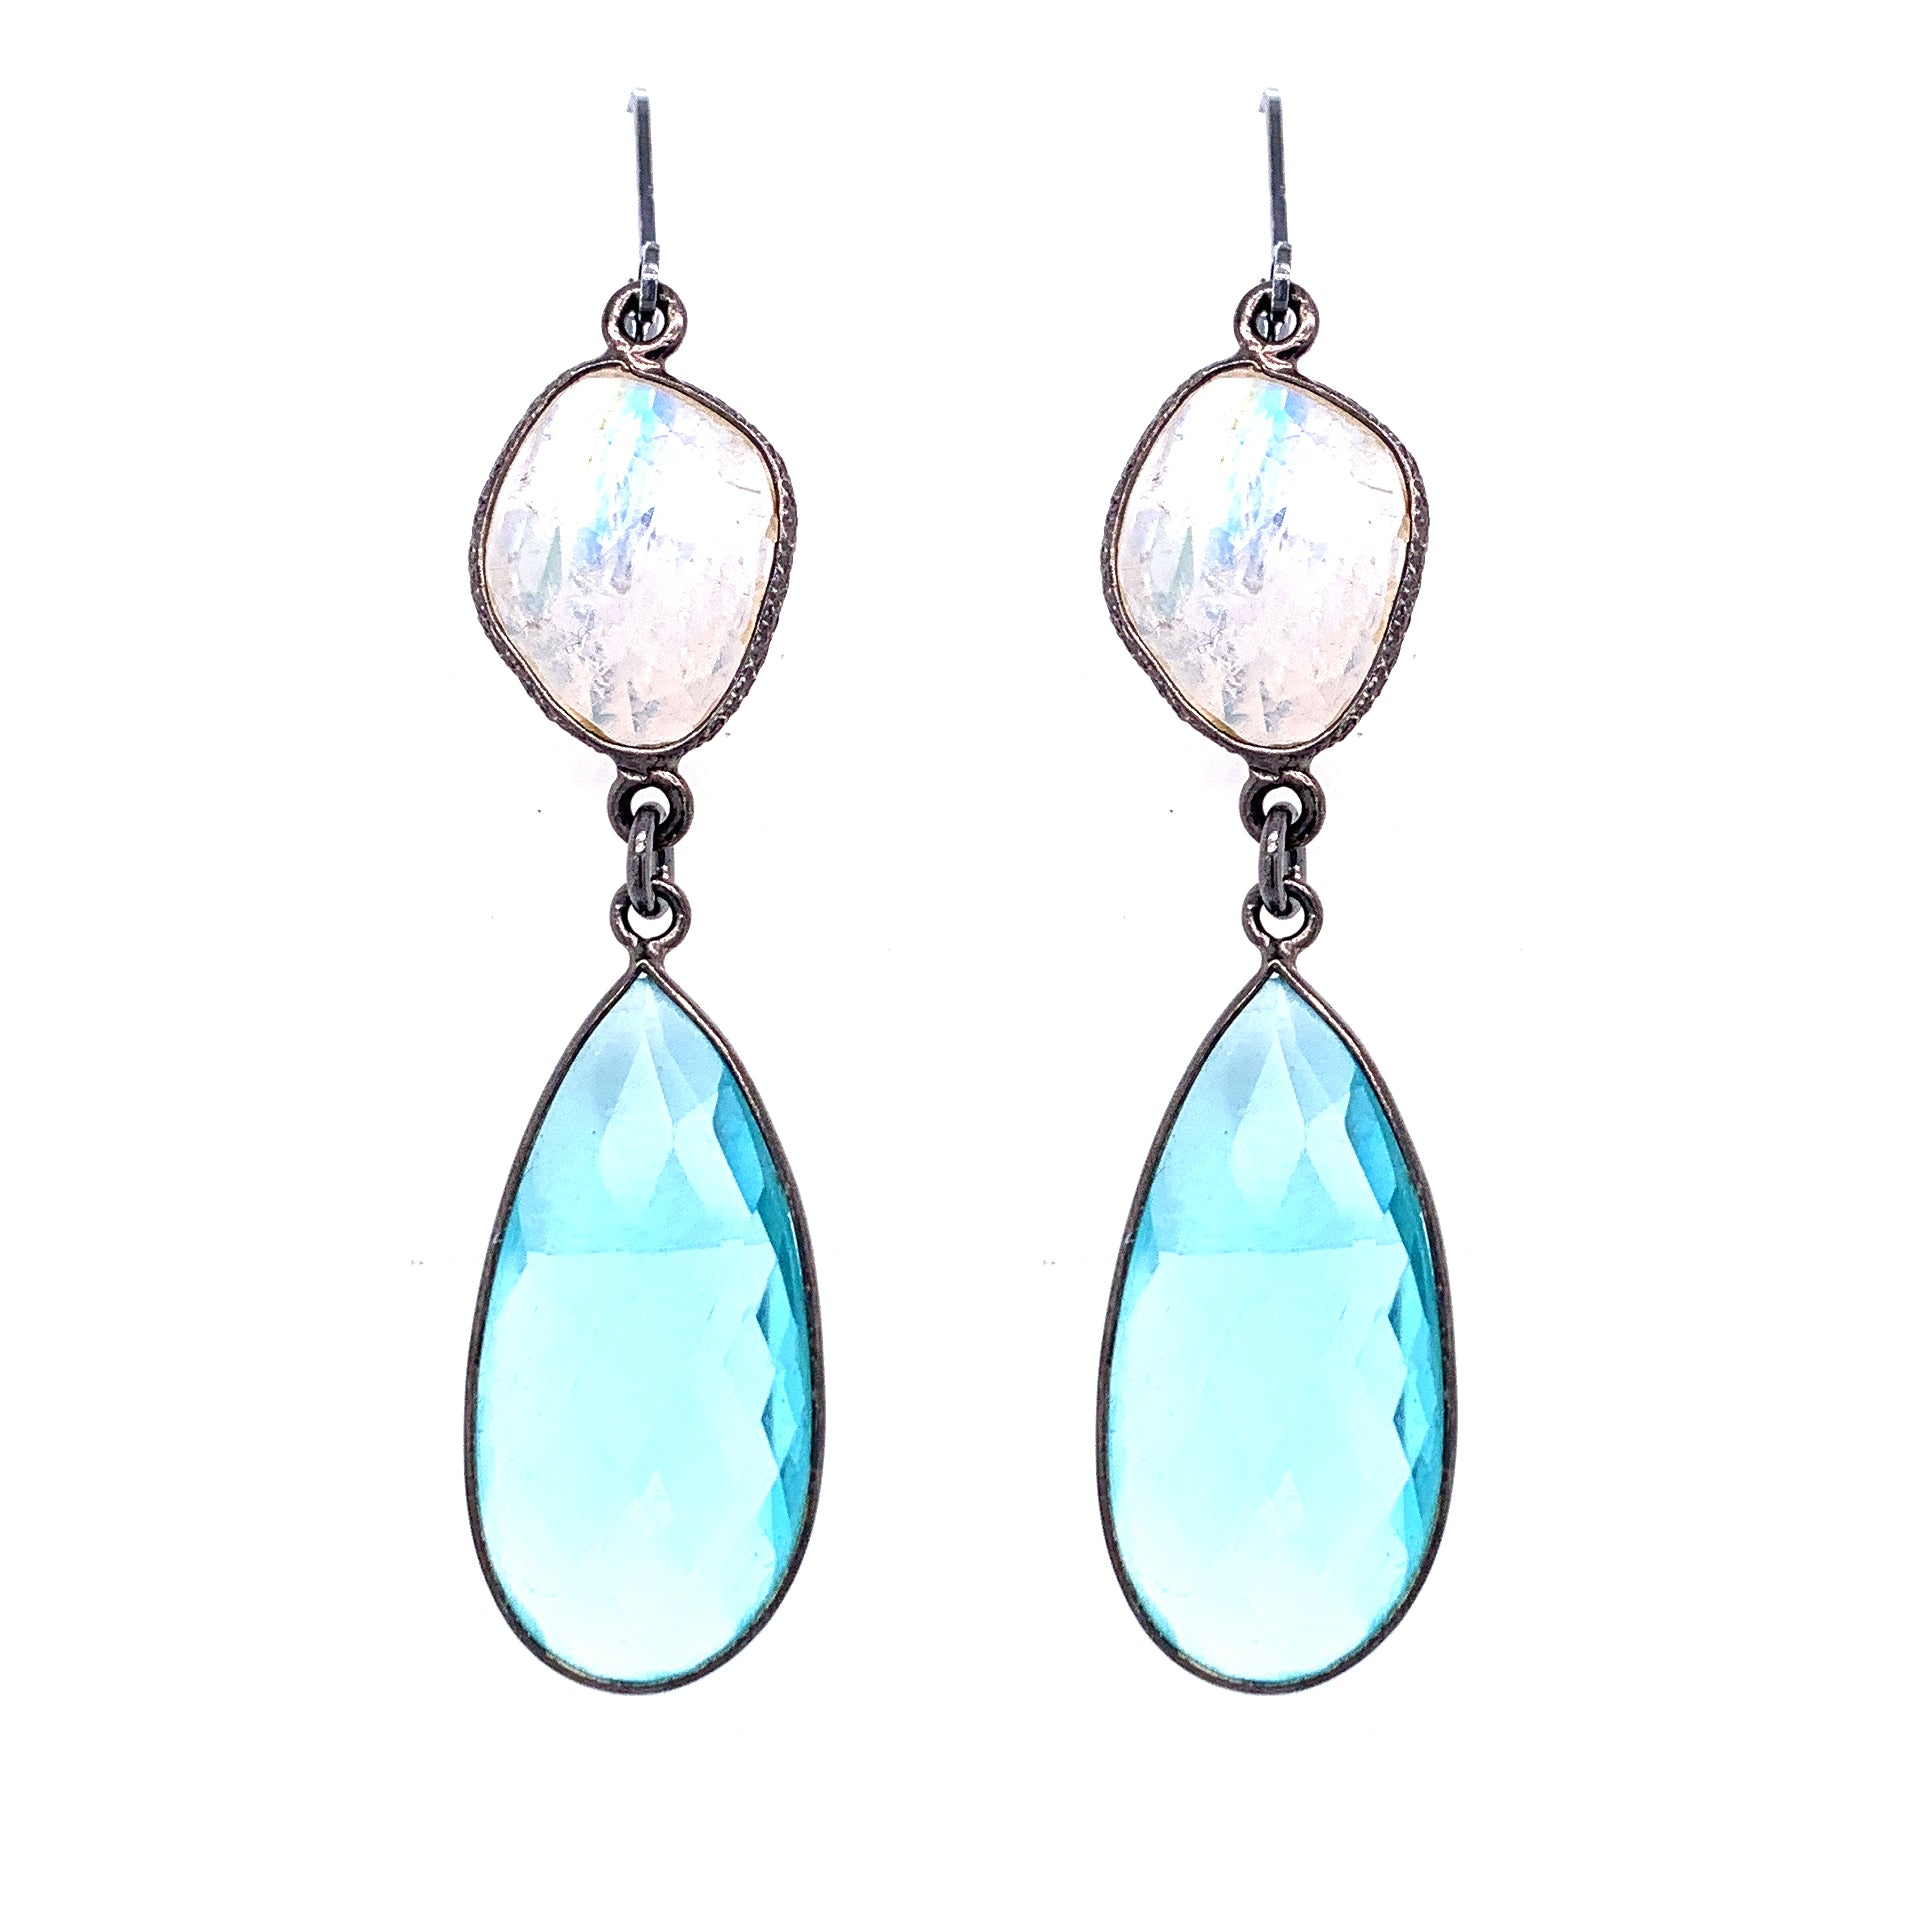 Rainbow Moonstone with Blue Quartz Drop Earrings, Oxidized